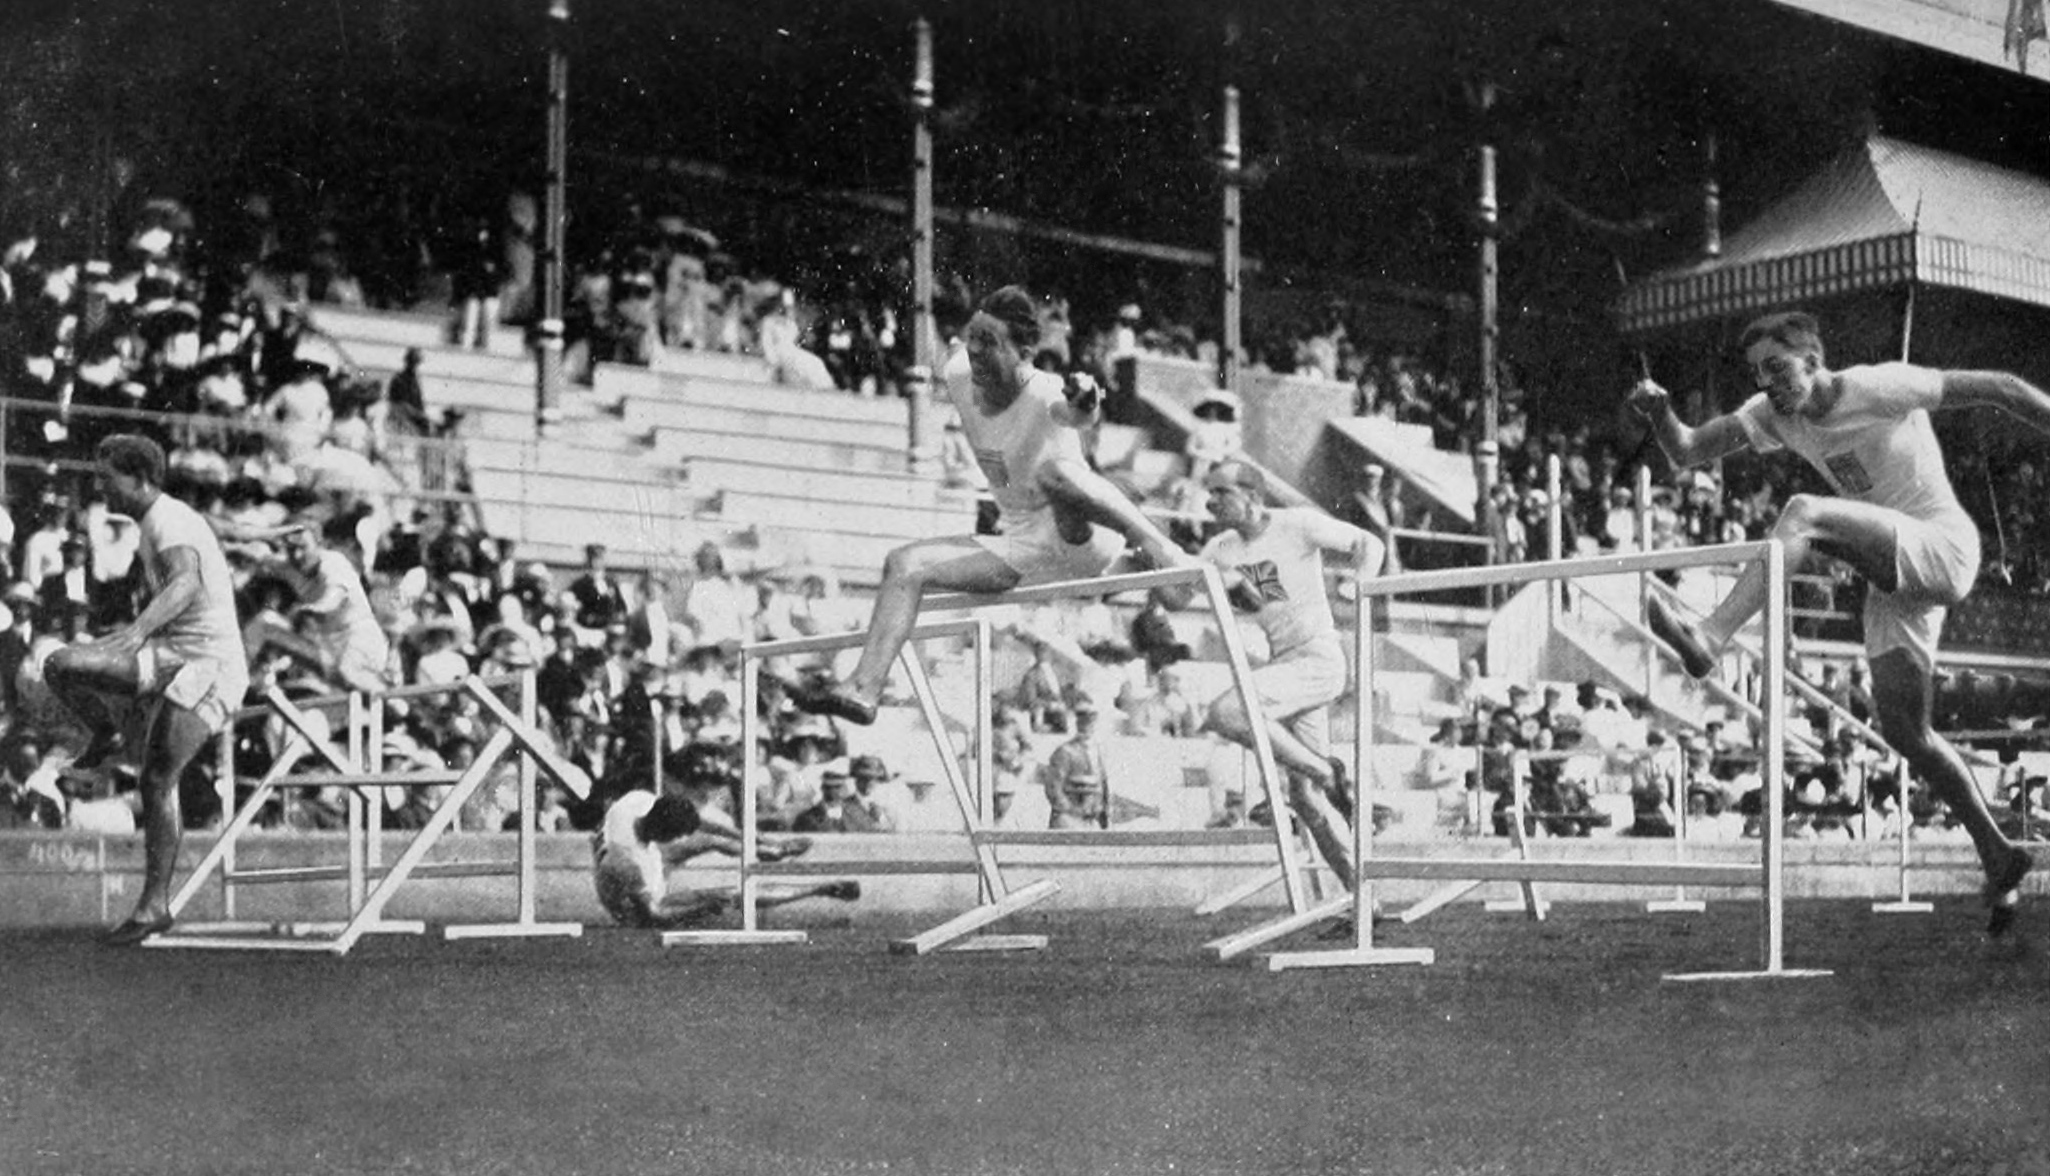 The final of the men's 110 metre hurdles at the 1912 Summer Olympics.